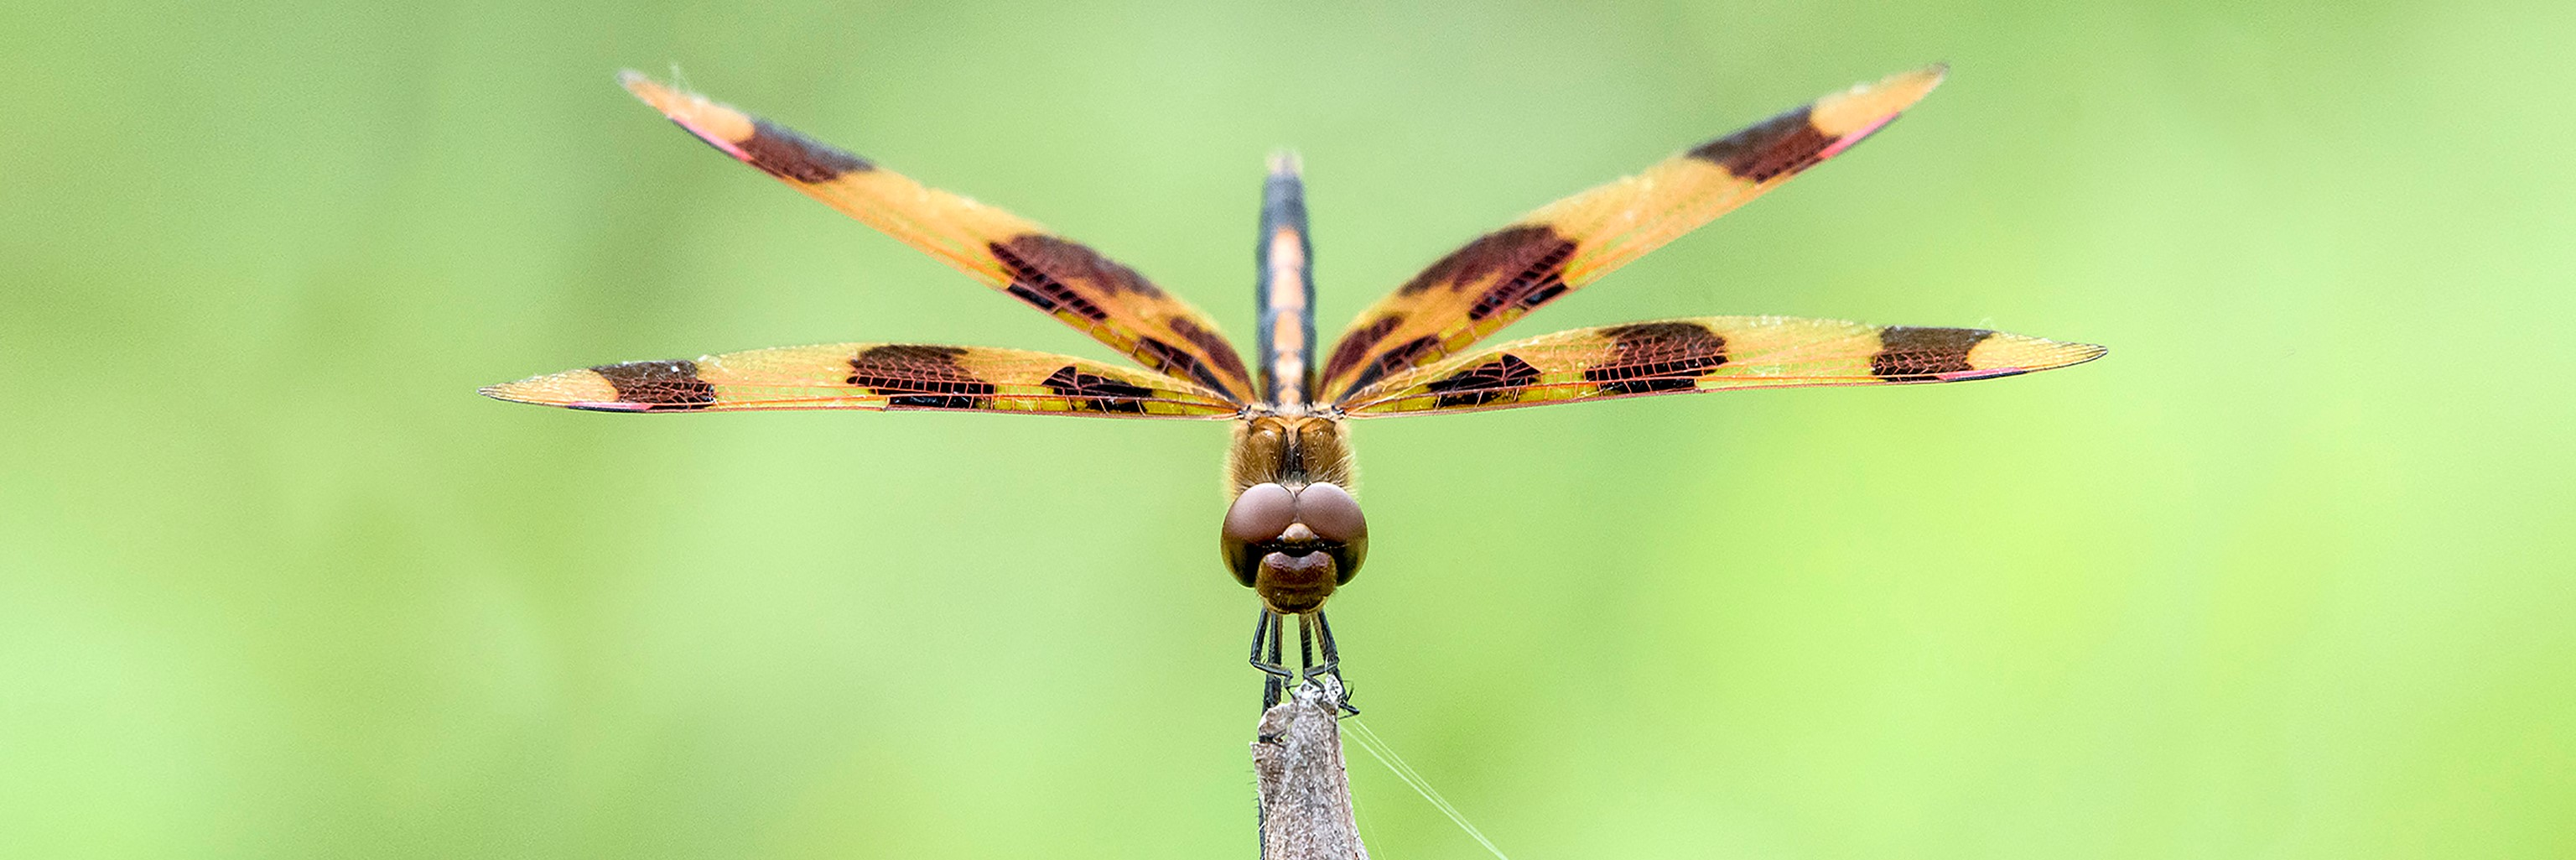 A picture of a dragonfly landing on a leaf.